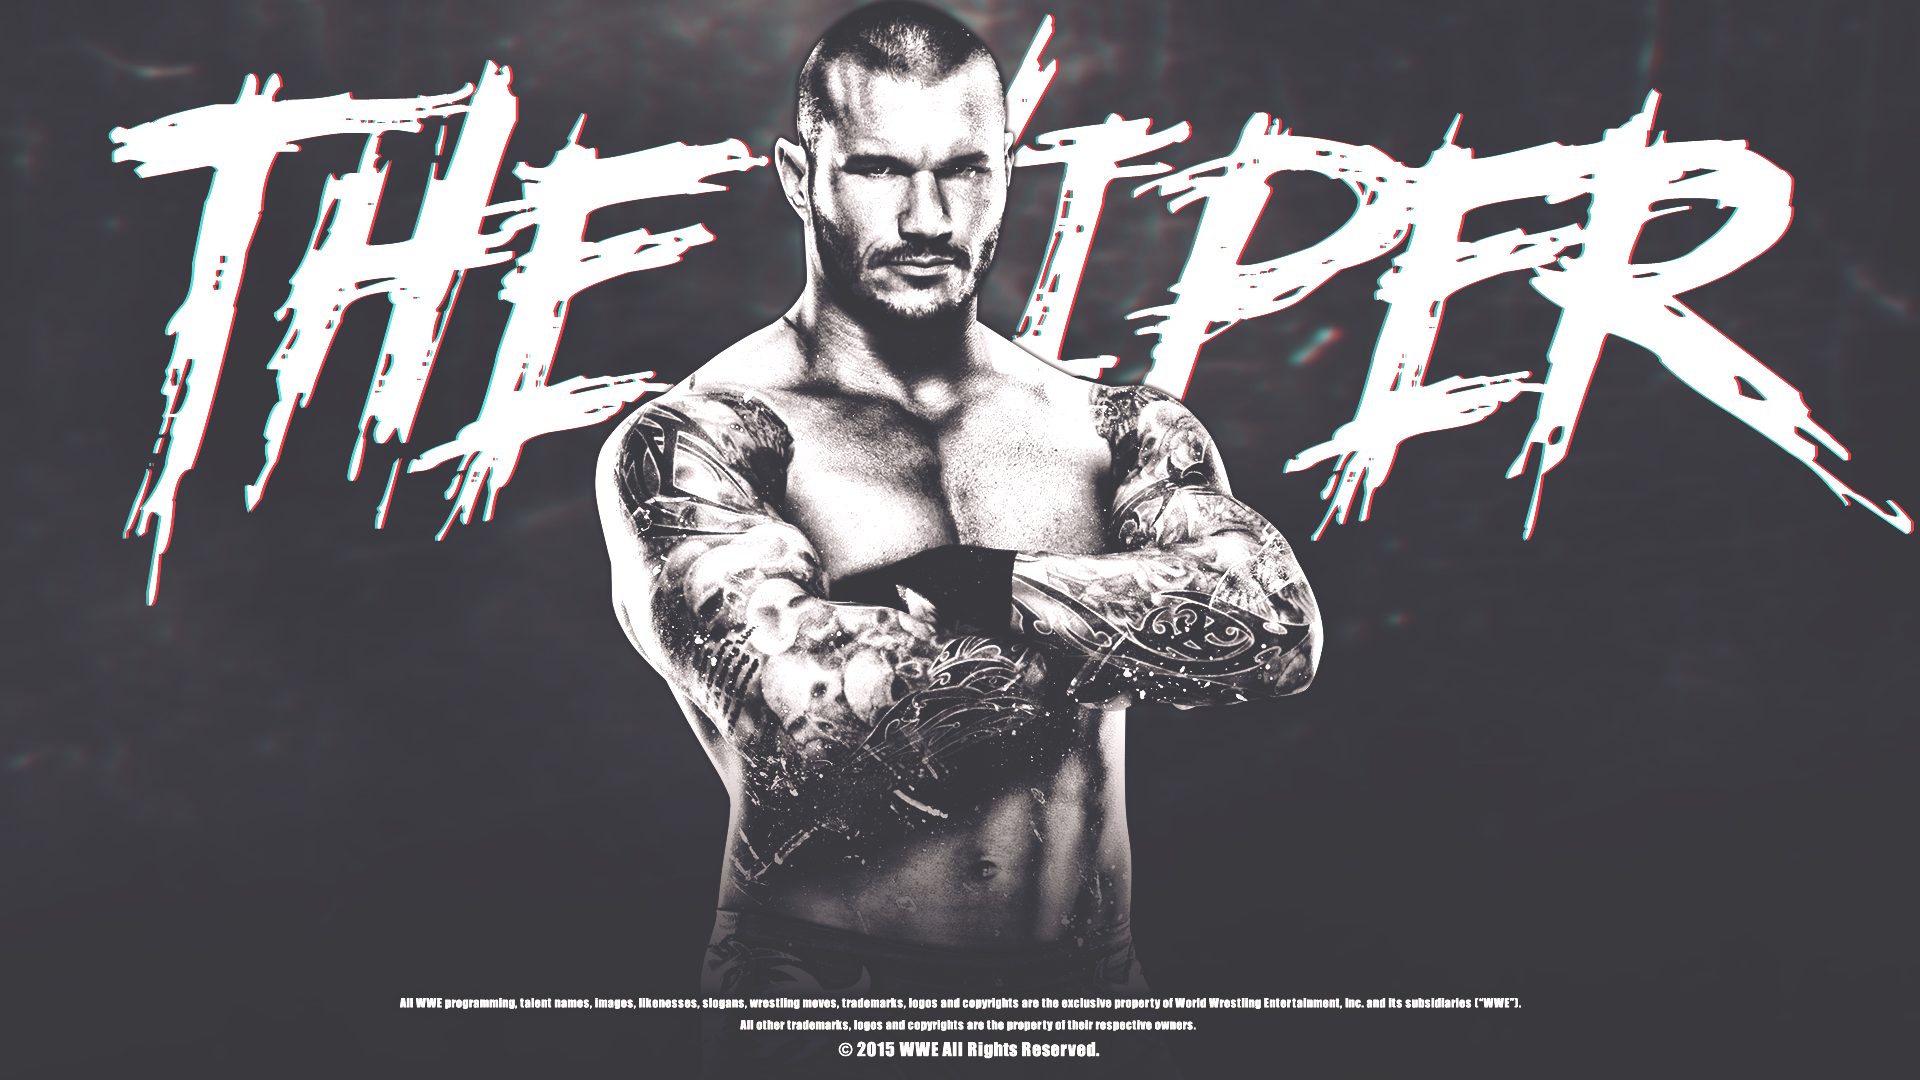 HD Randy Orton Wallpapers 1920x1080